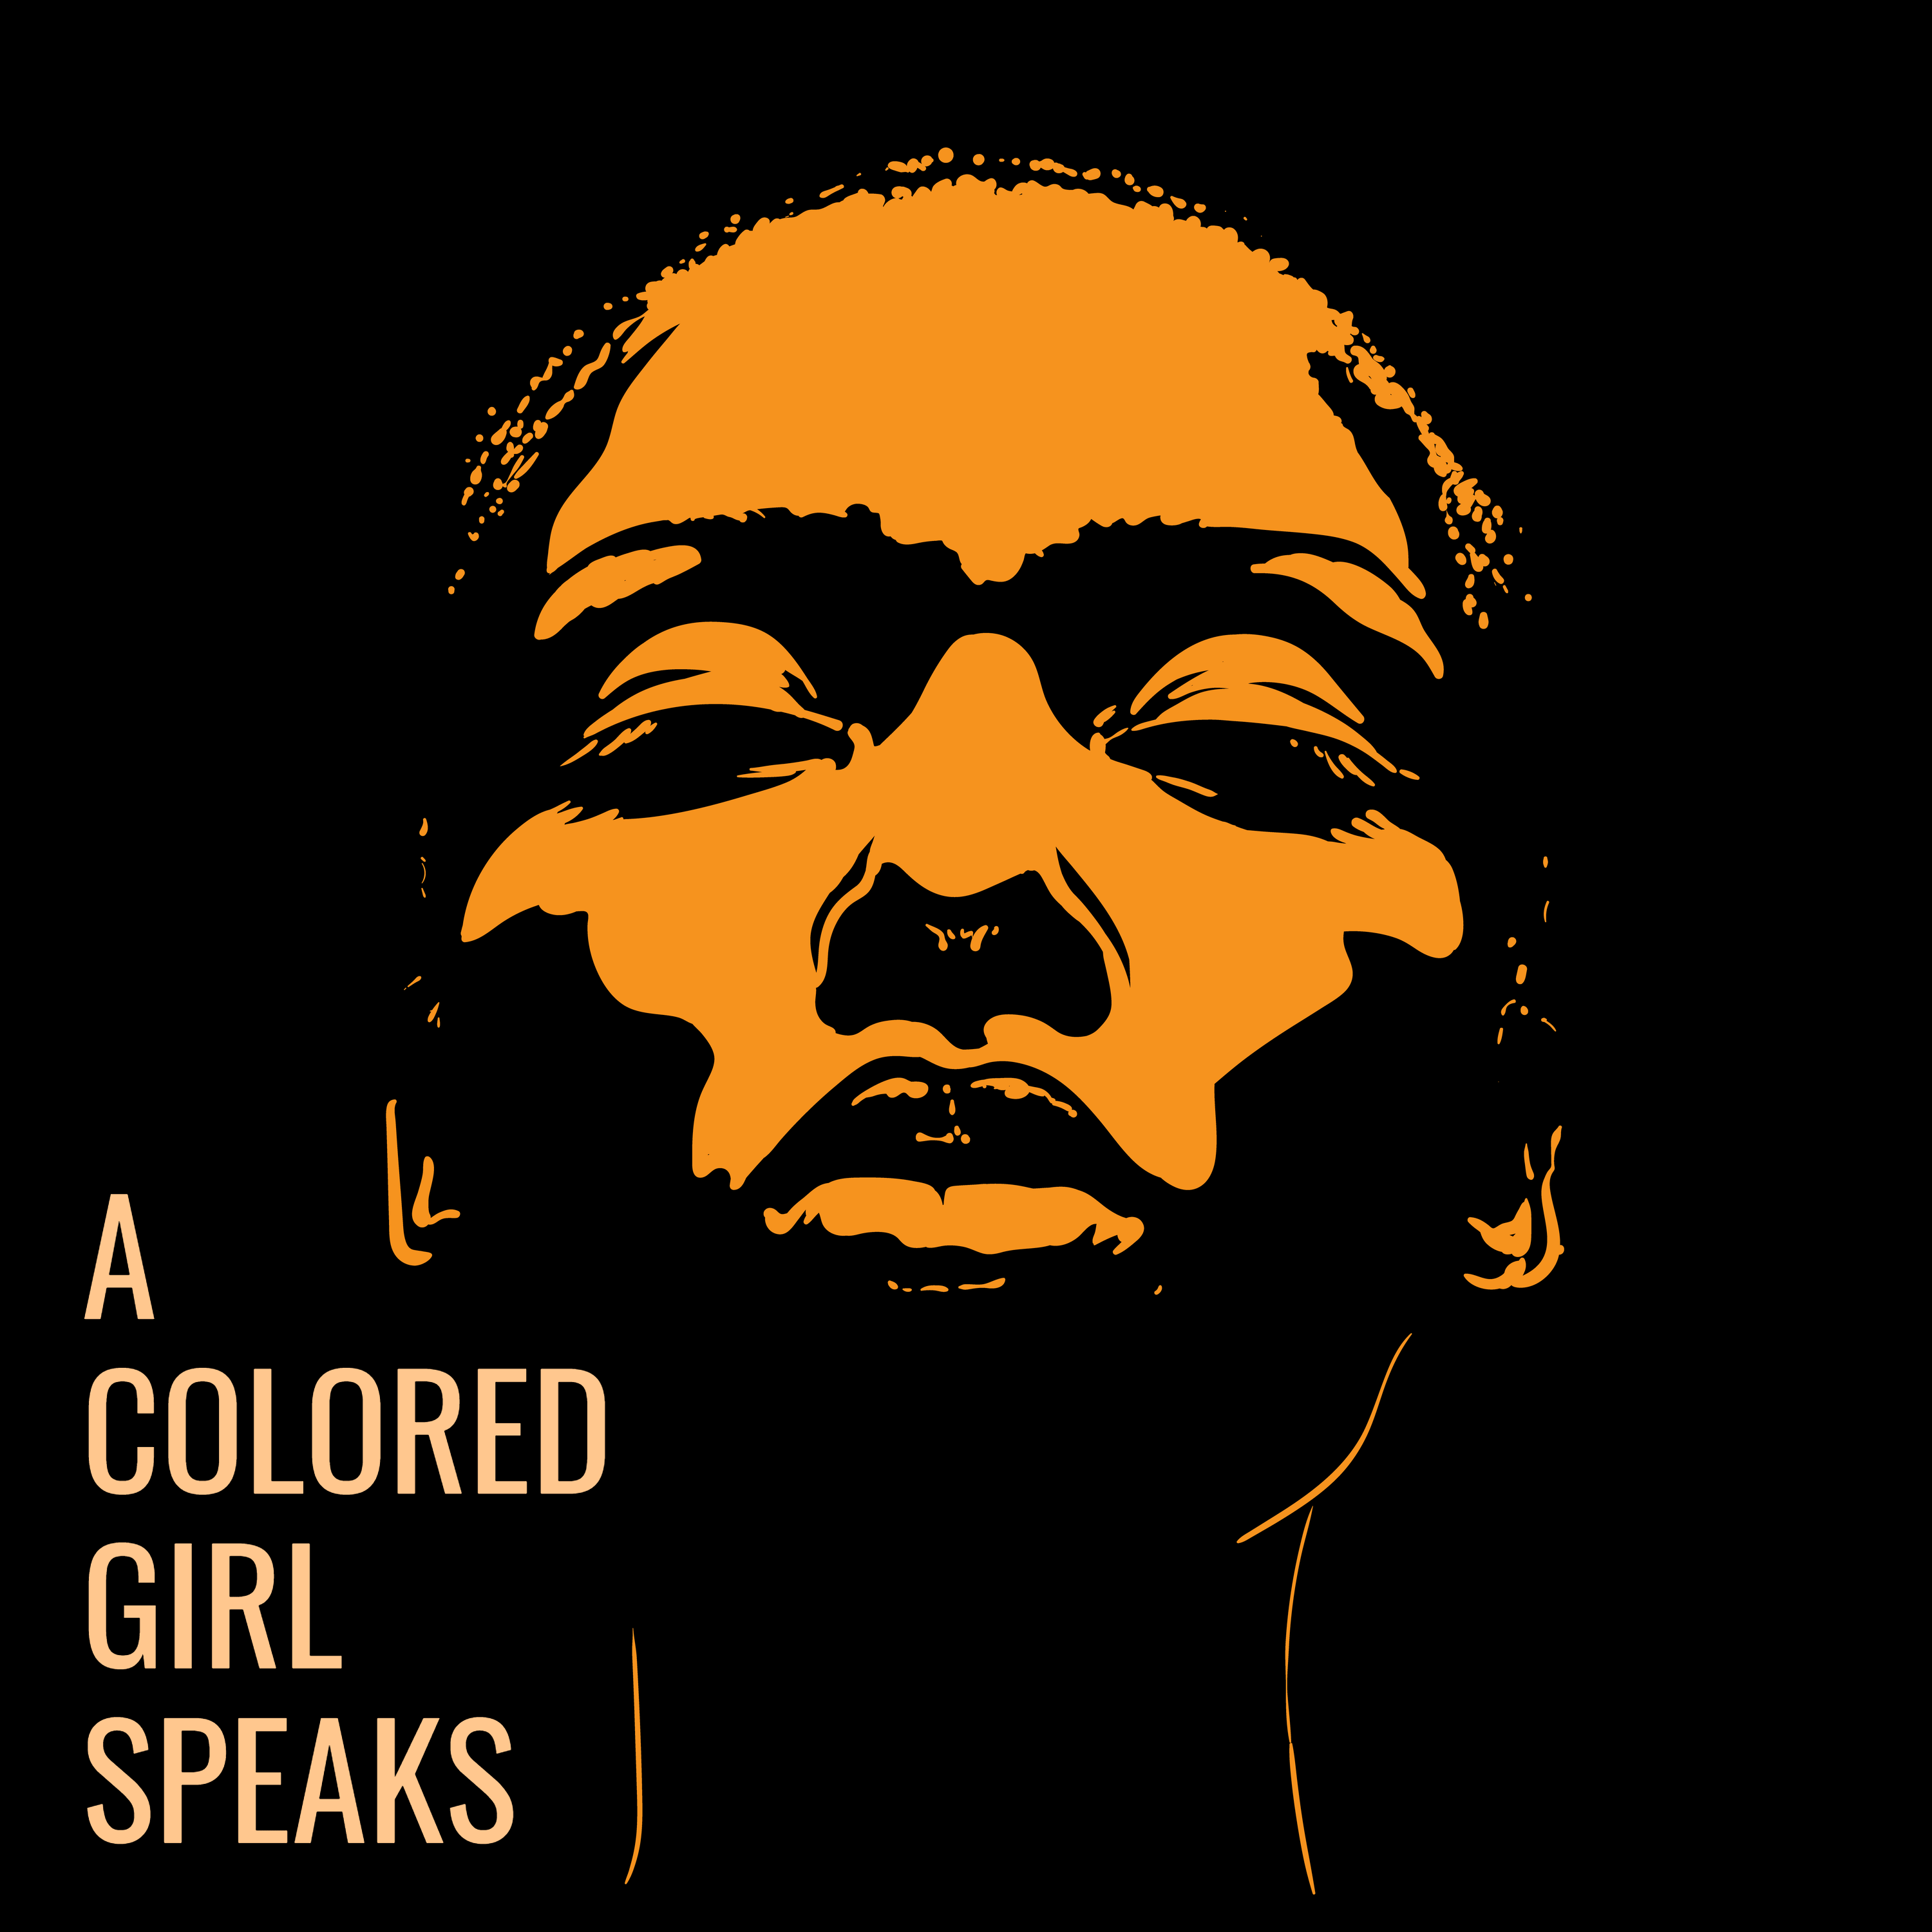 A Colored Girl Speaks